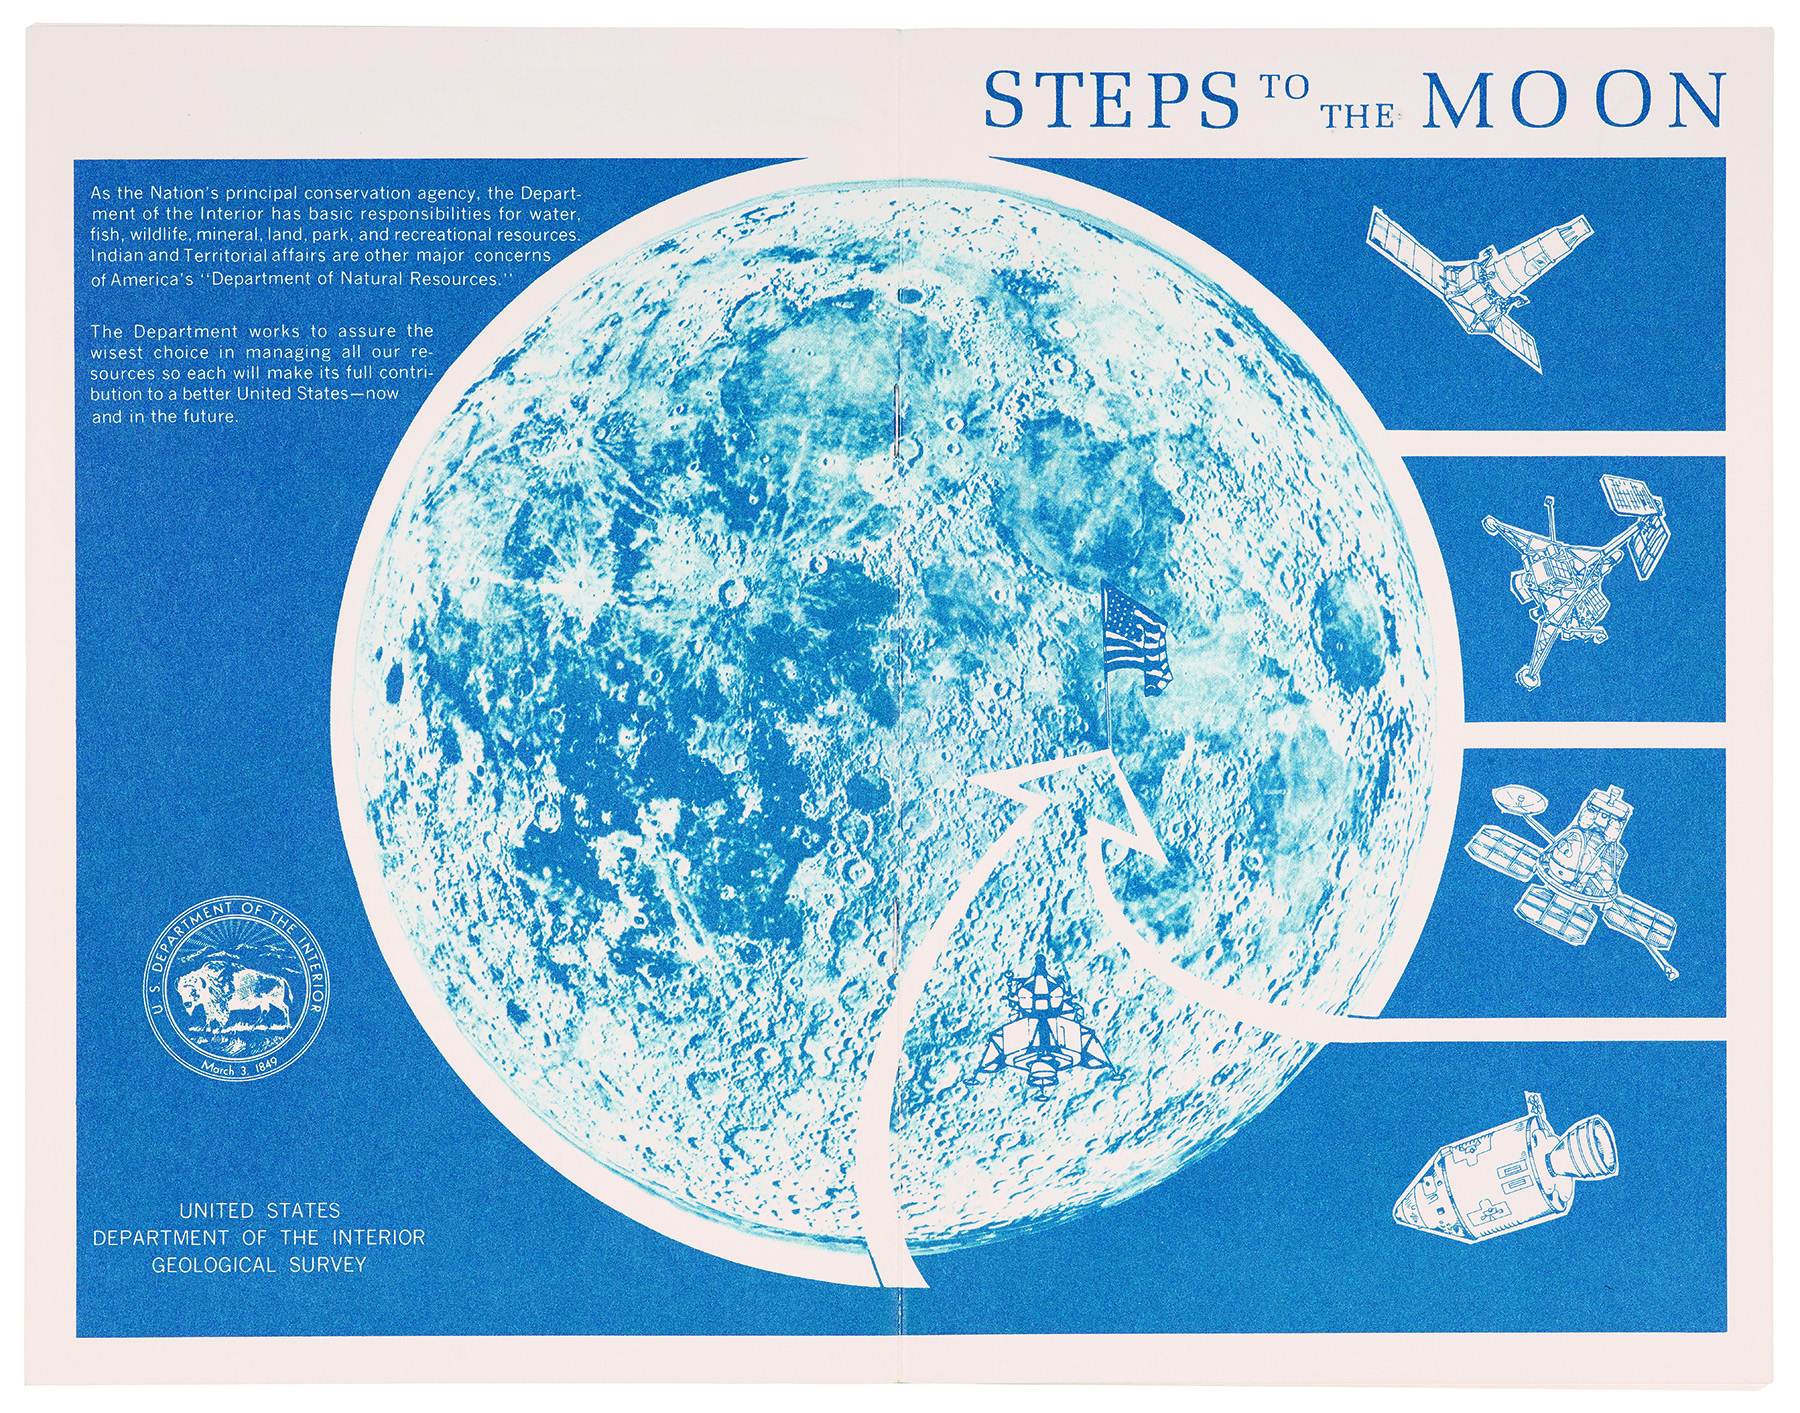 Steps to the Moon by the United States Department of the Interior Geological Survey, from the Apollo Mission 11 information kit, United States Air Force, Aeronautial Chart and Information Centre, ST. Louis, 1969. British Library, London.